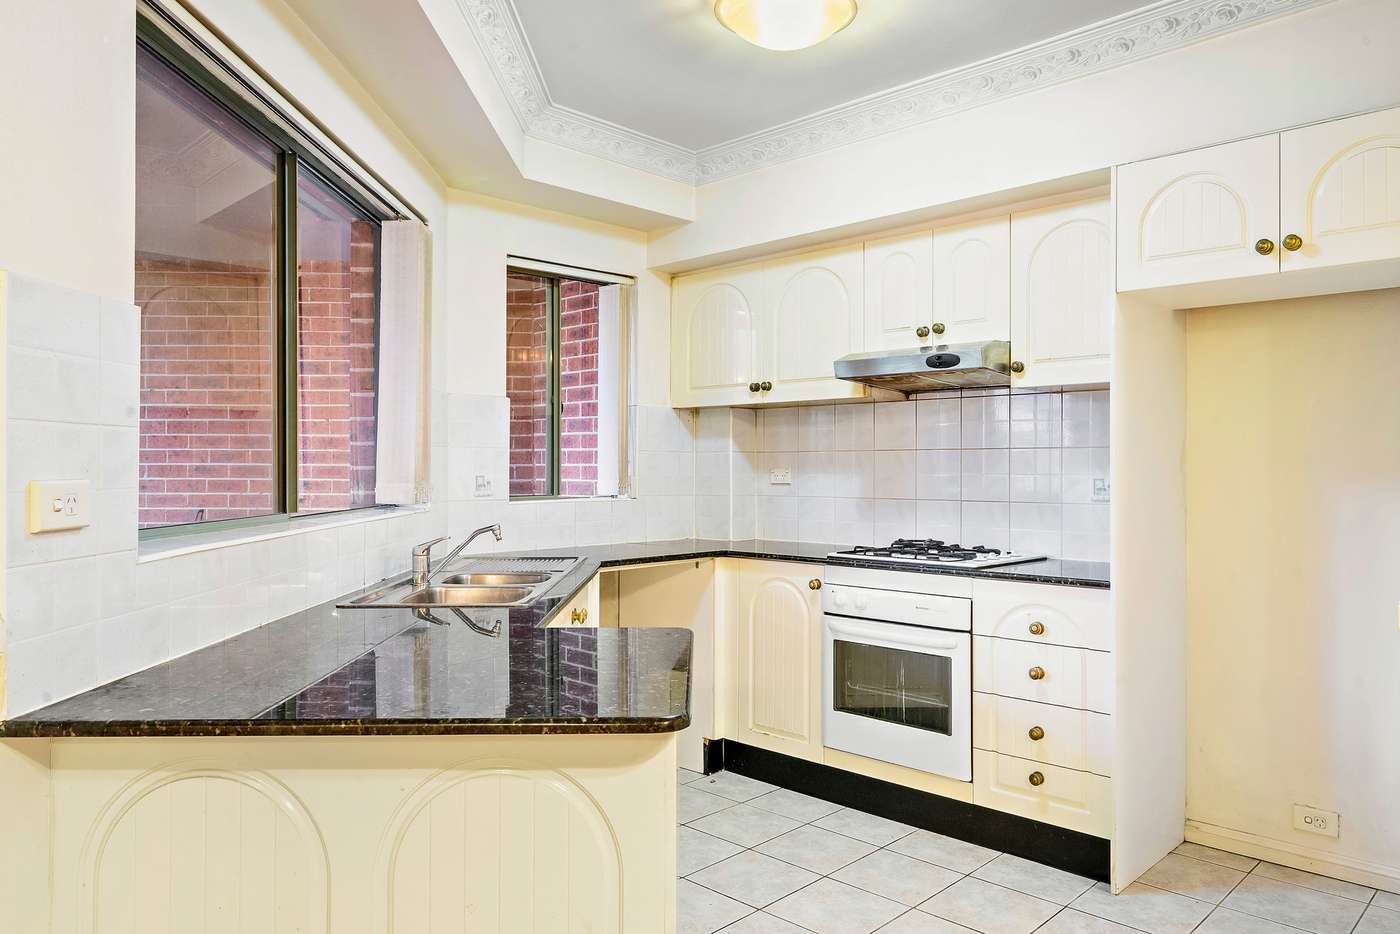 Main view of Homely unit listing, 14/9-11 Belmore Street, North Parramatta NSW 2151